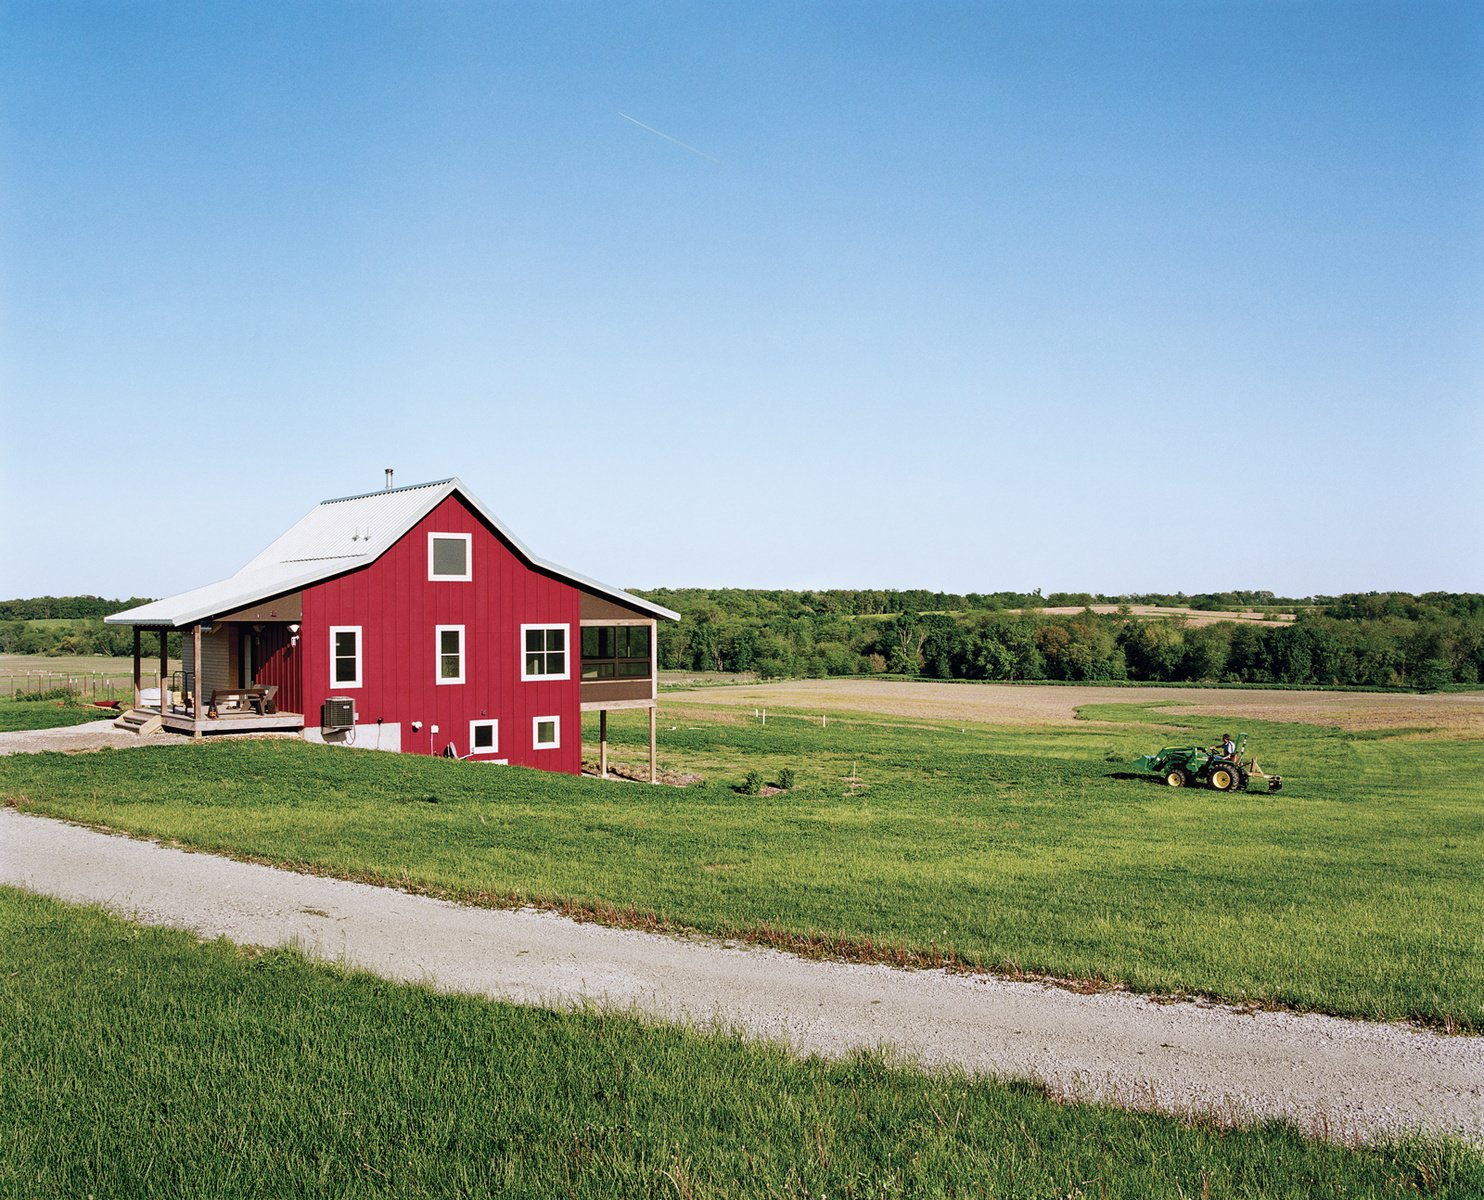 Geoff and Joanna Mouming's compact modern farmhouse is the first permanent structure at Yum Yum Farm in Wellman, Iowa. On the field that stretches out before it, organic vegetables will soon make attentive farmers of the Moumings. Photo by: Mark Mahaney  Photo 1 of 9 in The Eco-Friendly Guide to Upgrading an Existing Home from Modern Homes Across the American Midwest